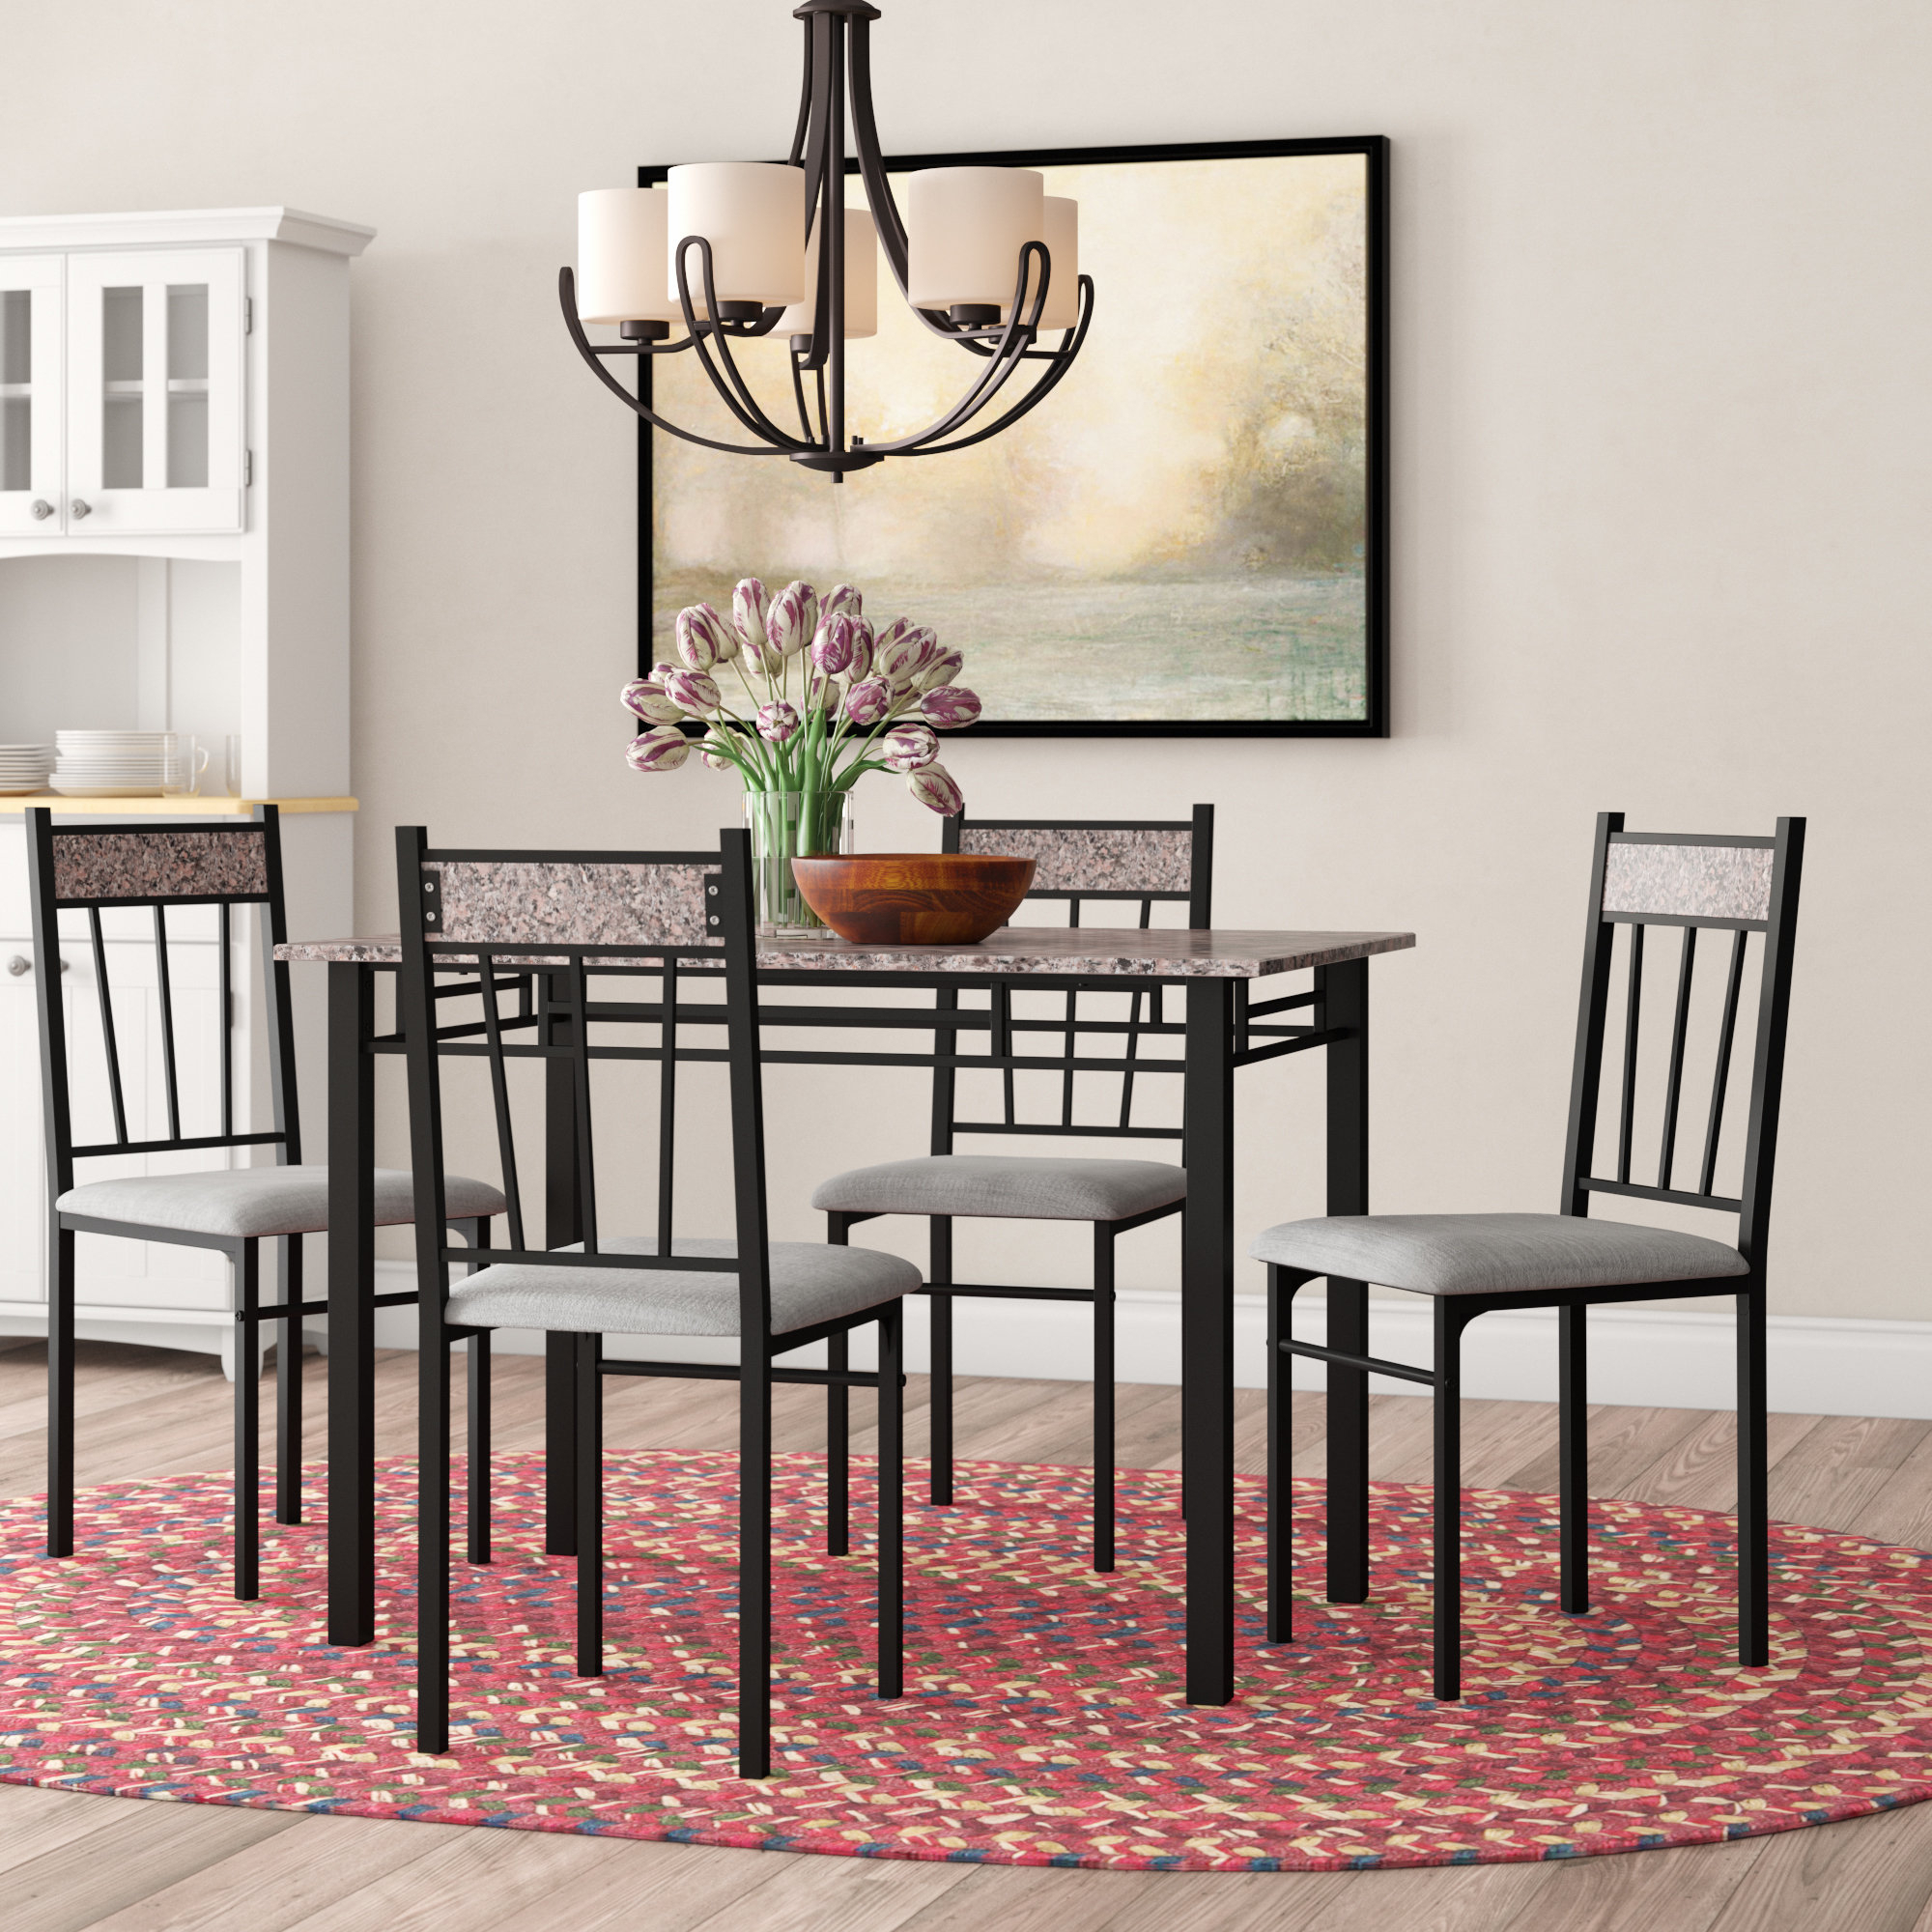 Wayfair With Liles 5 Piece Breakfast Nook Dining Sets (View 13 of 25)